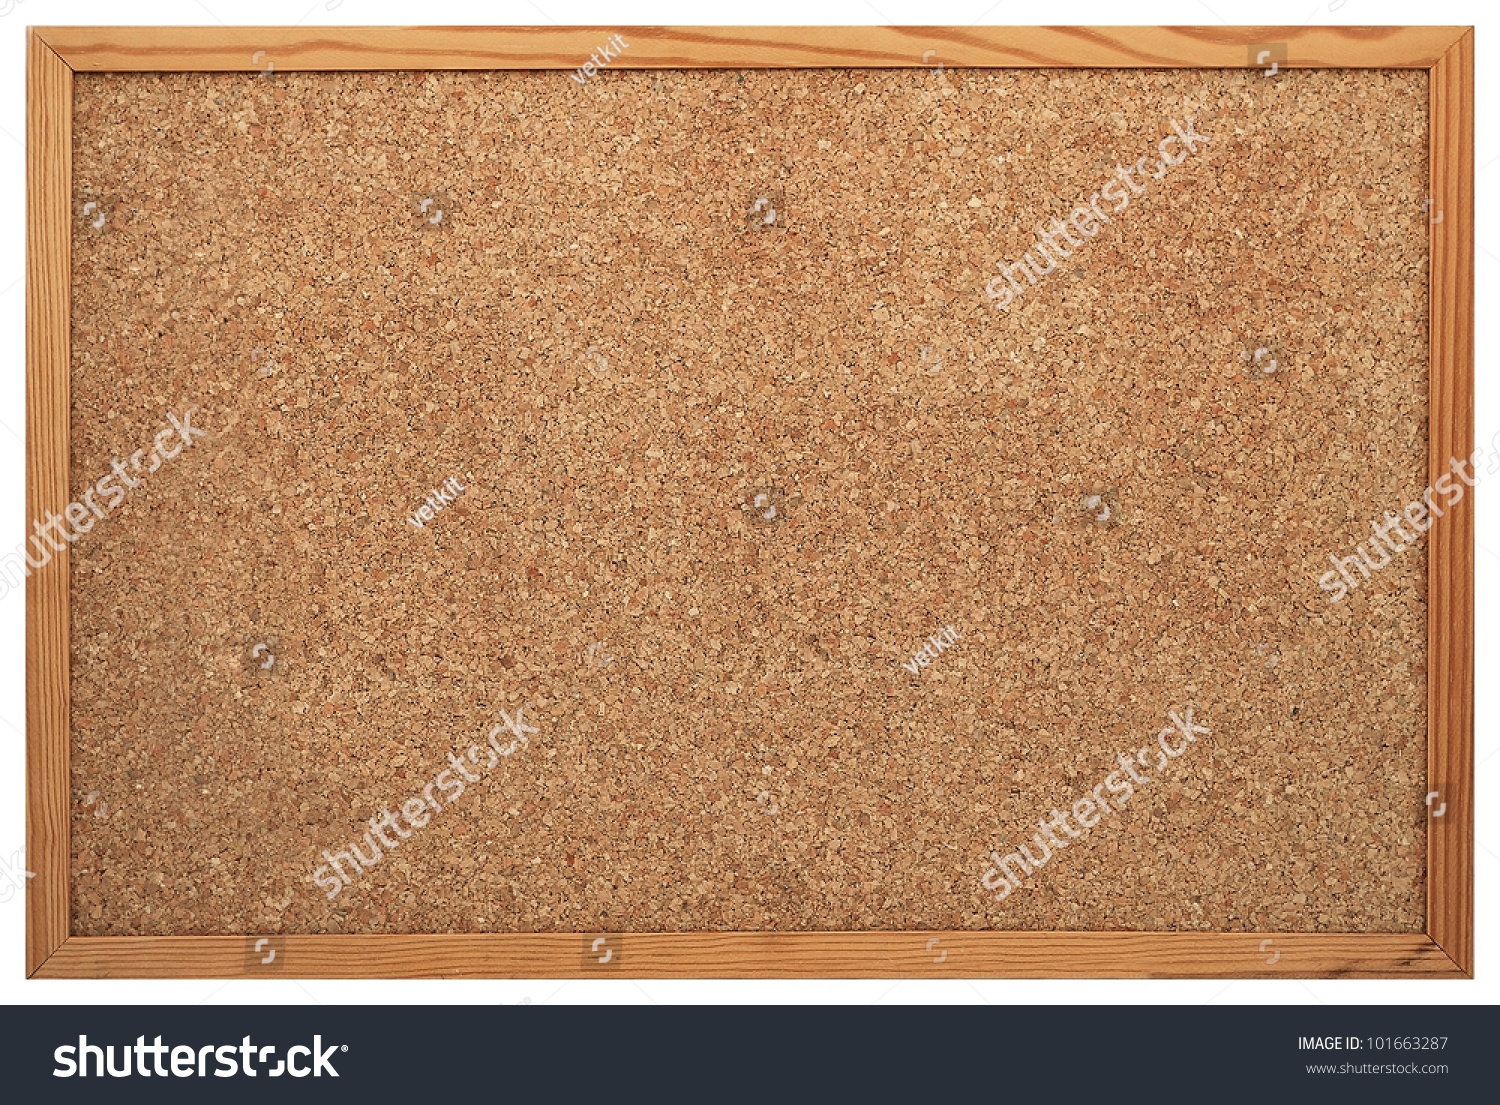 blank cork board with wooden frame isolated